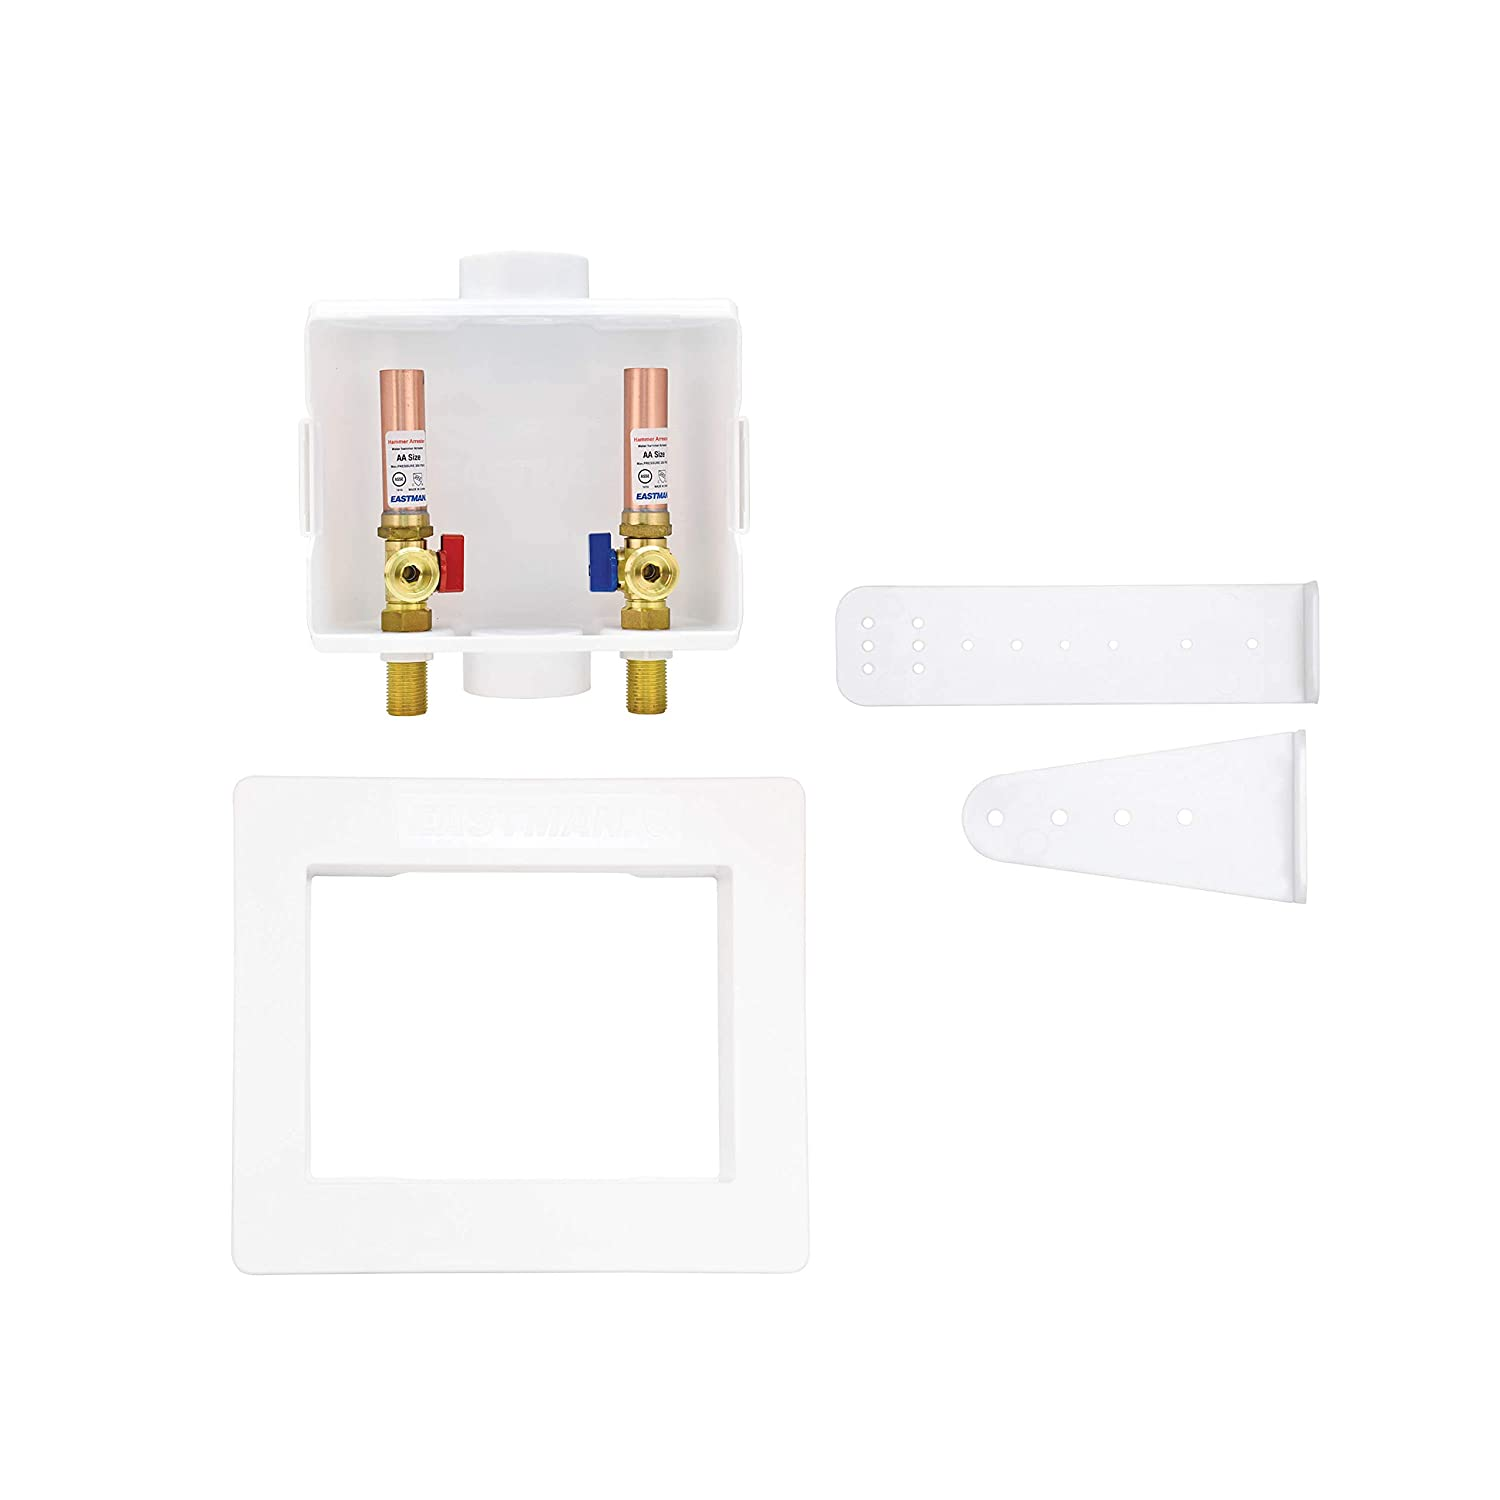 "Eastman 60253 Sweat Center Drain Washing Machine Outlet Box with Hammer Arresters, 1/2""-Inch Sweat Connection, with 1/4-Turn Ball Valves Installed, White"